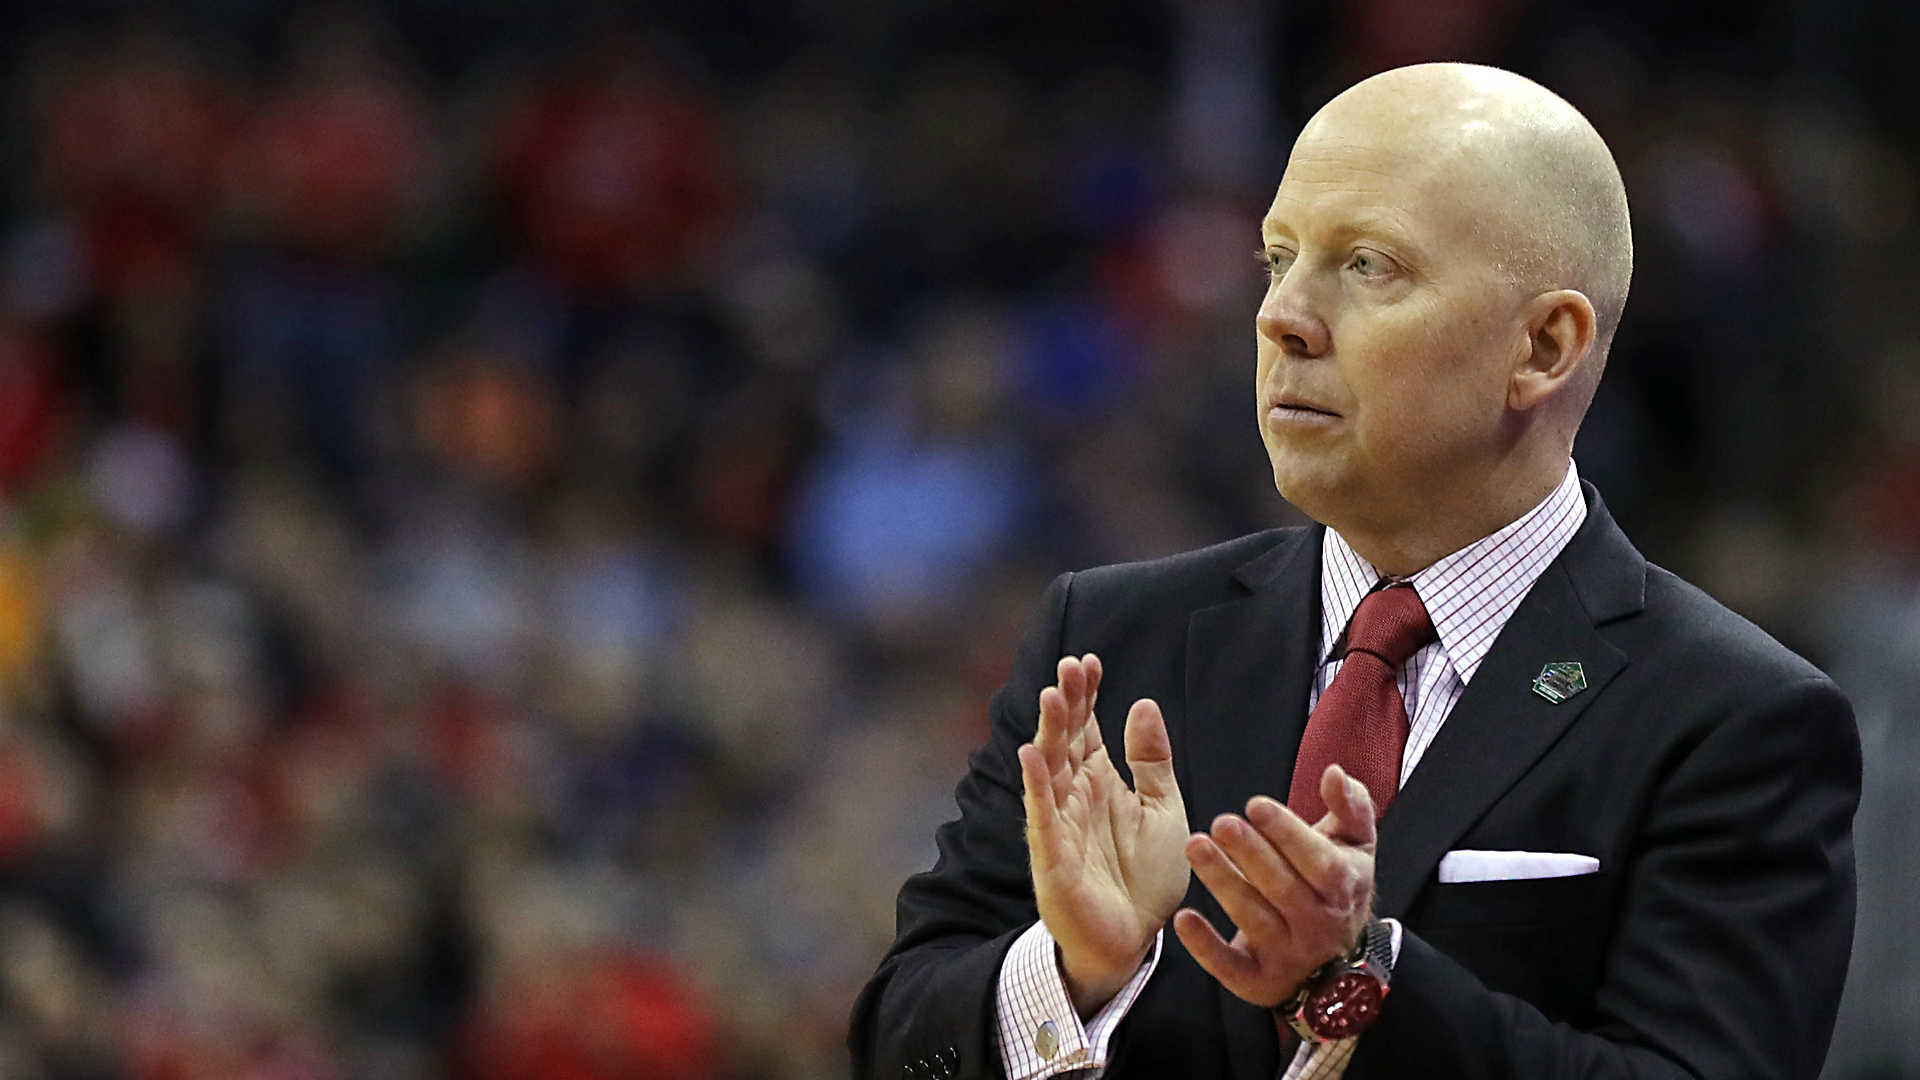 UCLA hires Cincinnati's Mick Cronin as basketball coach